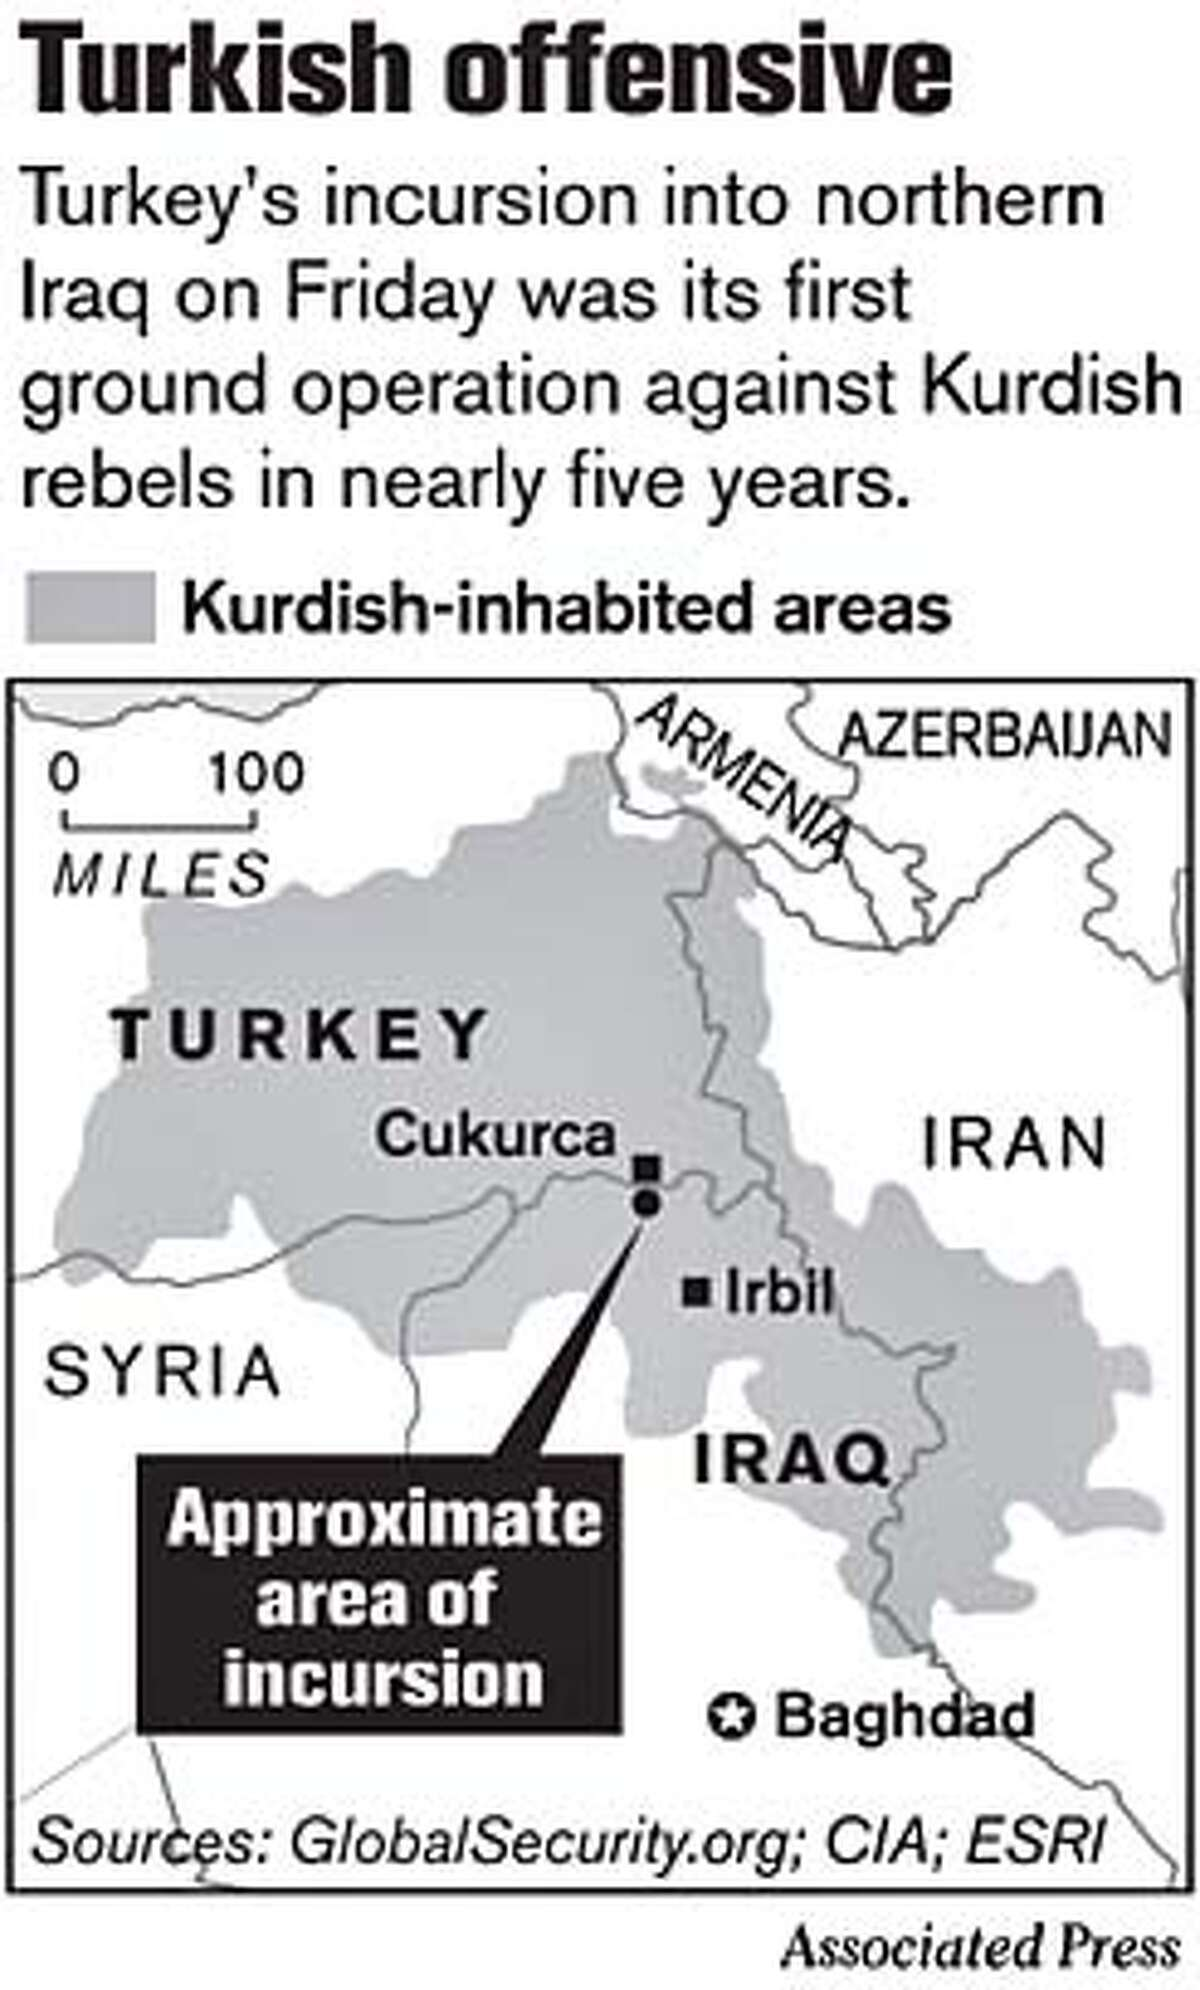 Turkish offensive. Associated Press Graphic